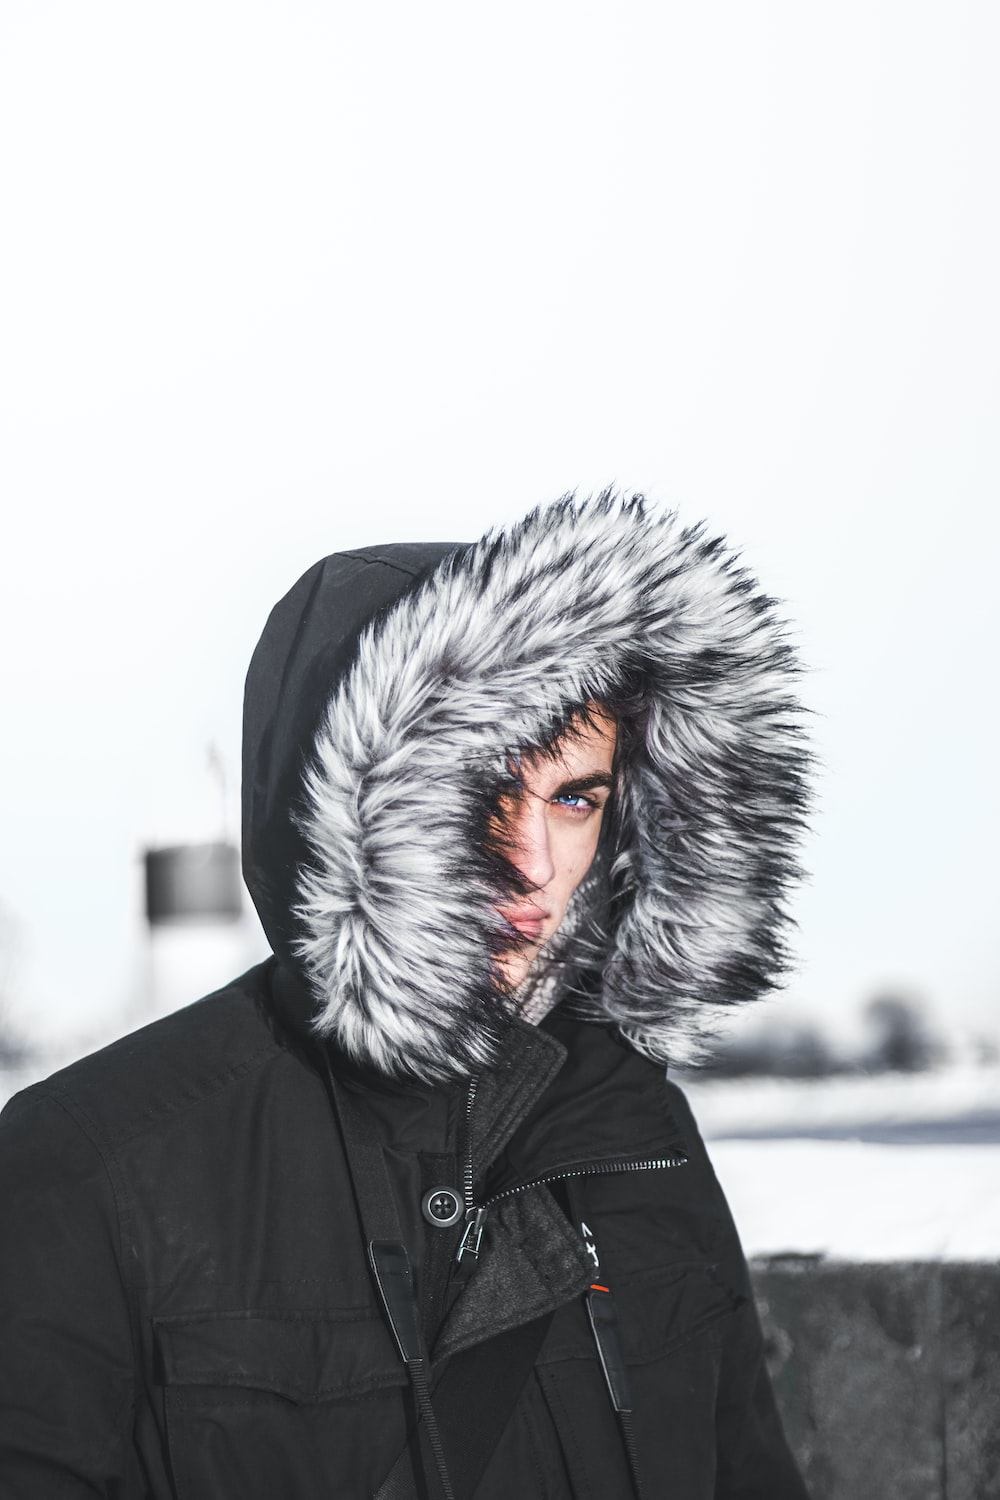 person covering face using hoodie